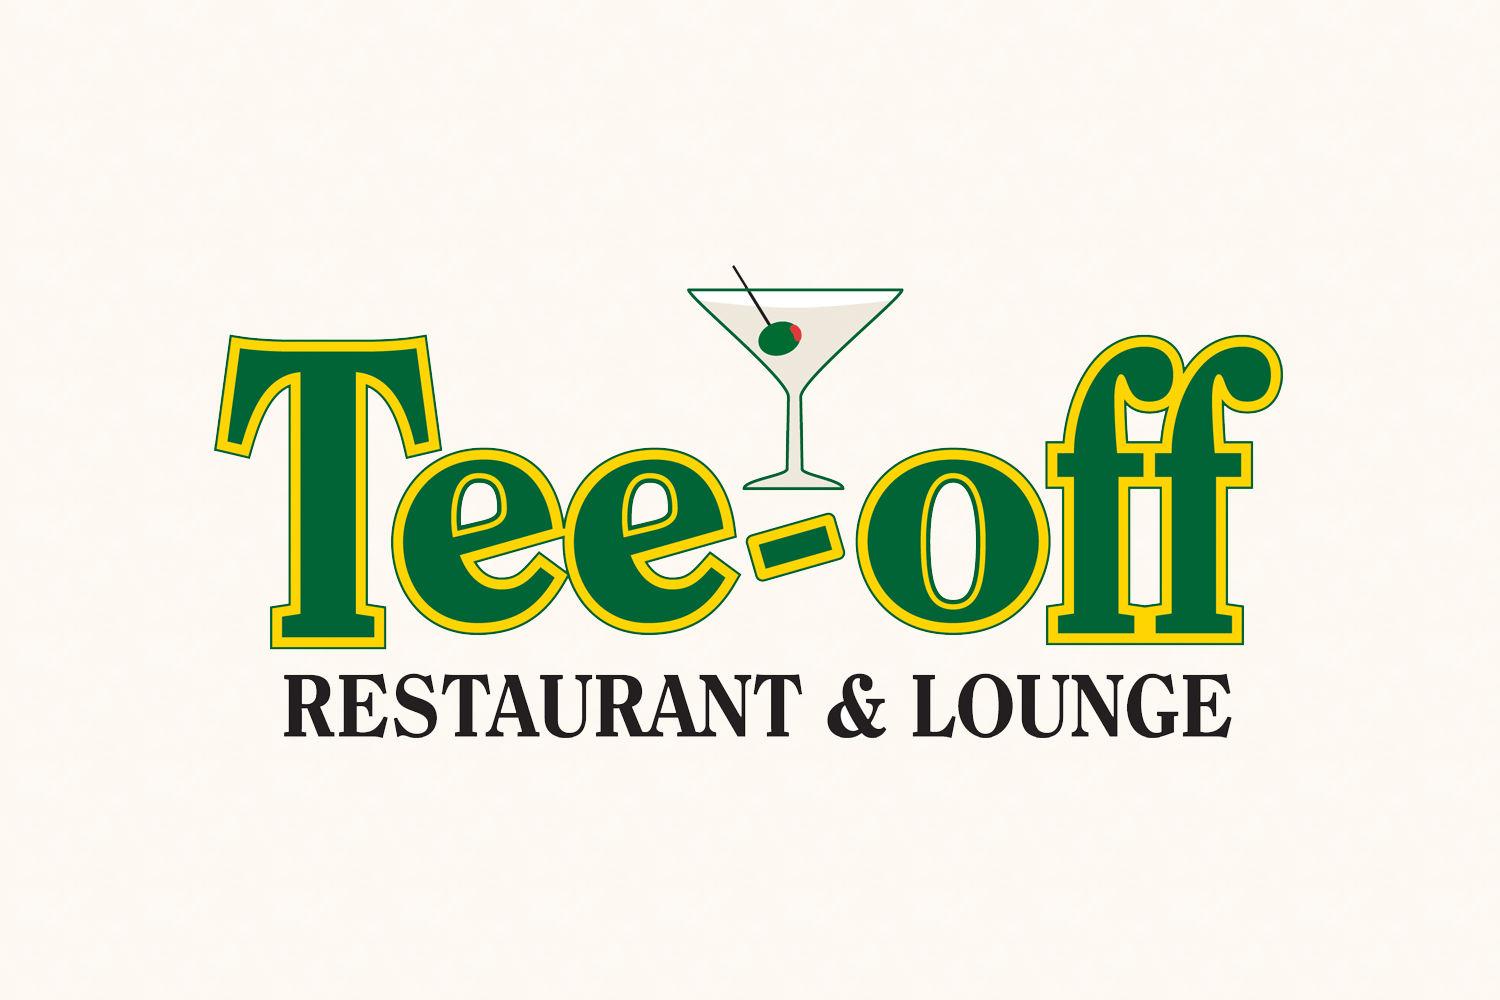 Tee-Off Restaurant & Lounge